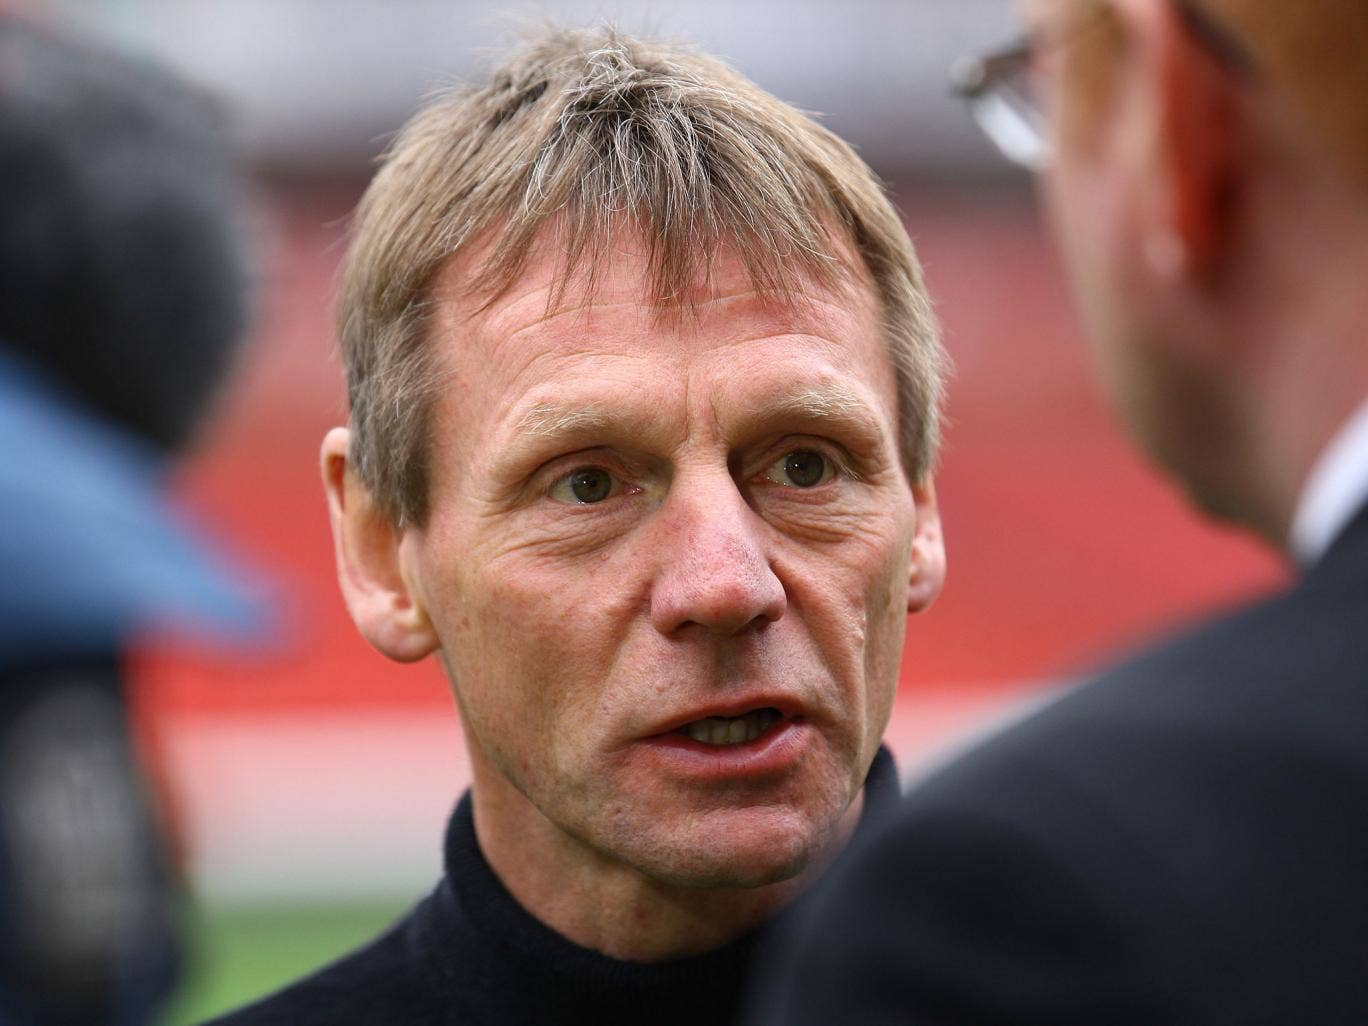 Stuart Pearce is interviewed pitch side after being unveiled as the new Nottingham Forest Manager at the City Ground